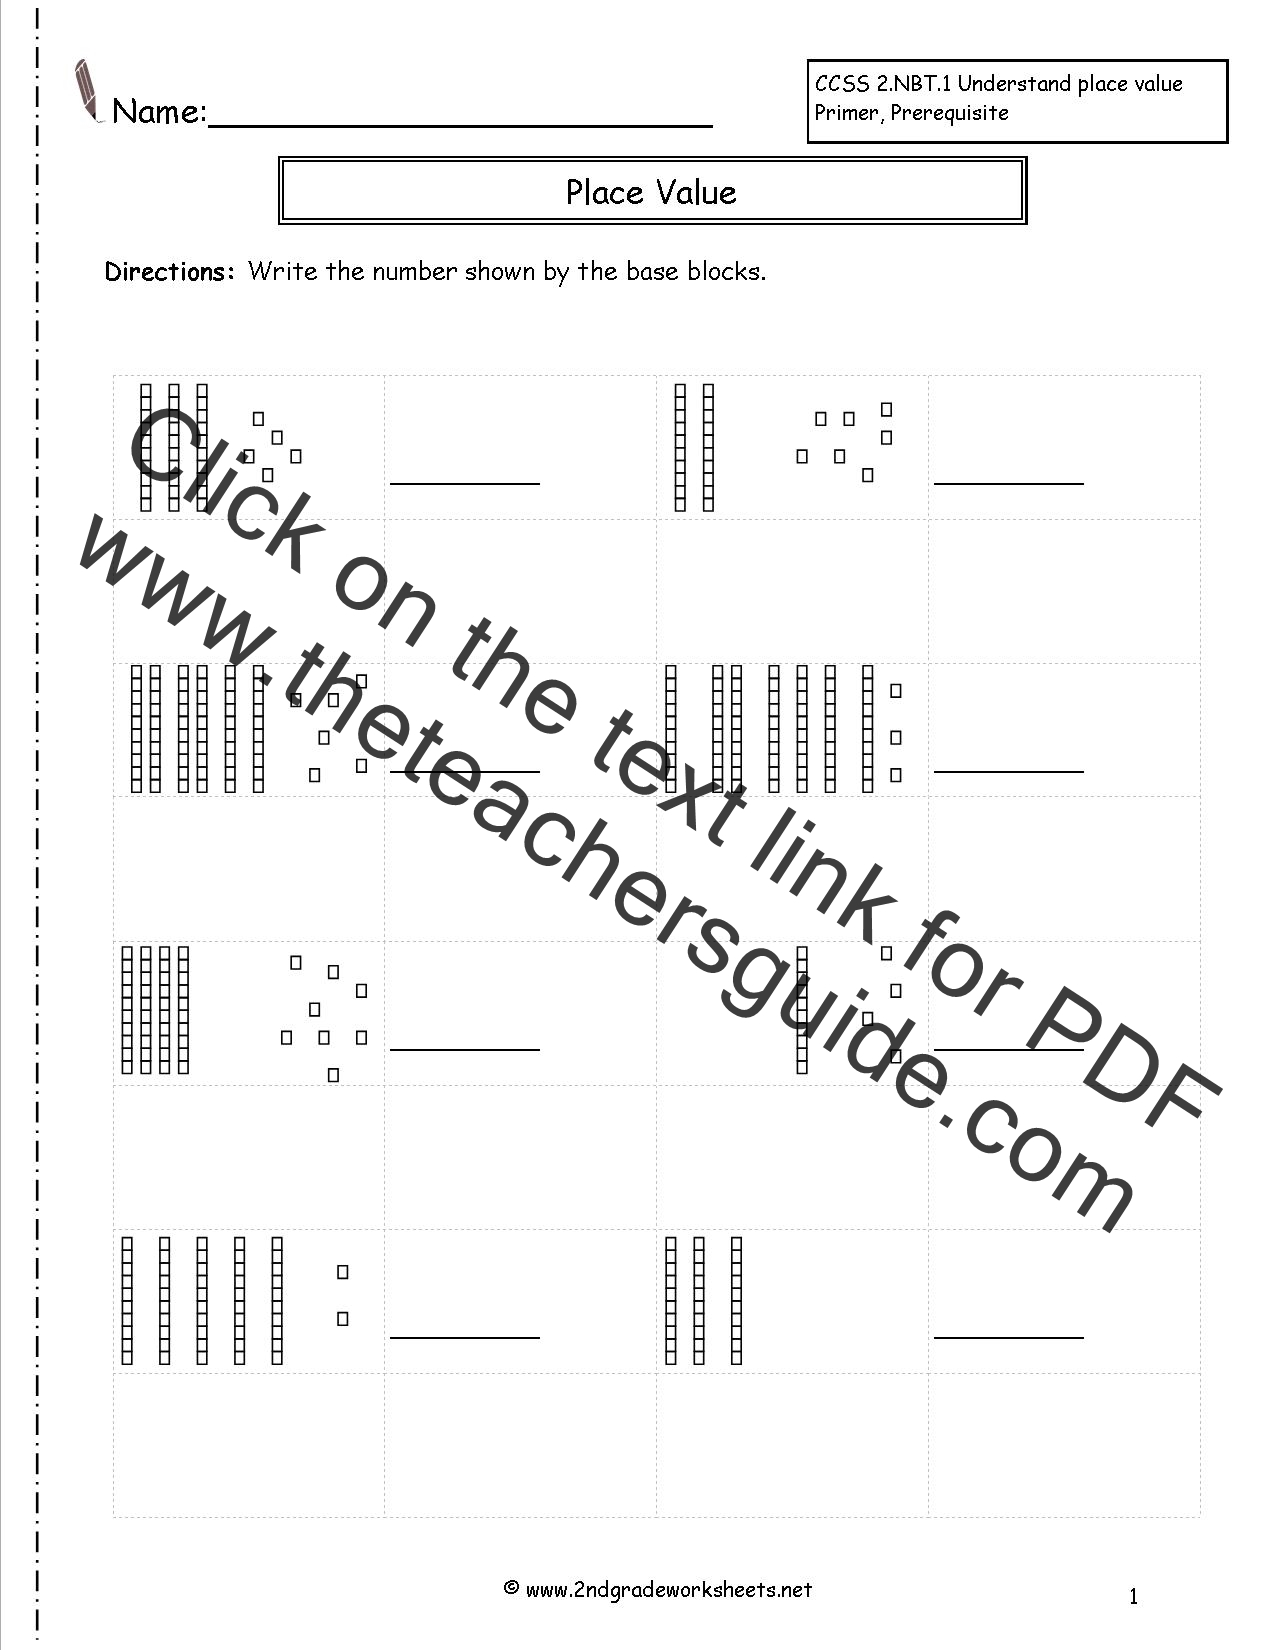 worksheet Identifying Place Value Worksheets second grade place value worksheets worksheet